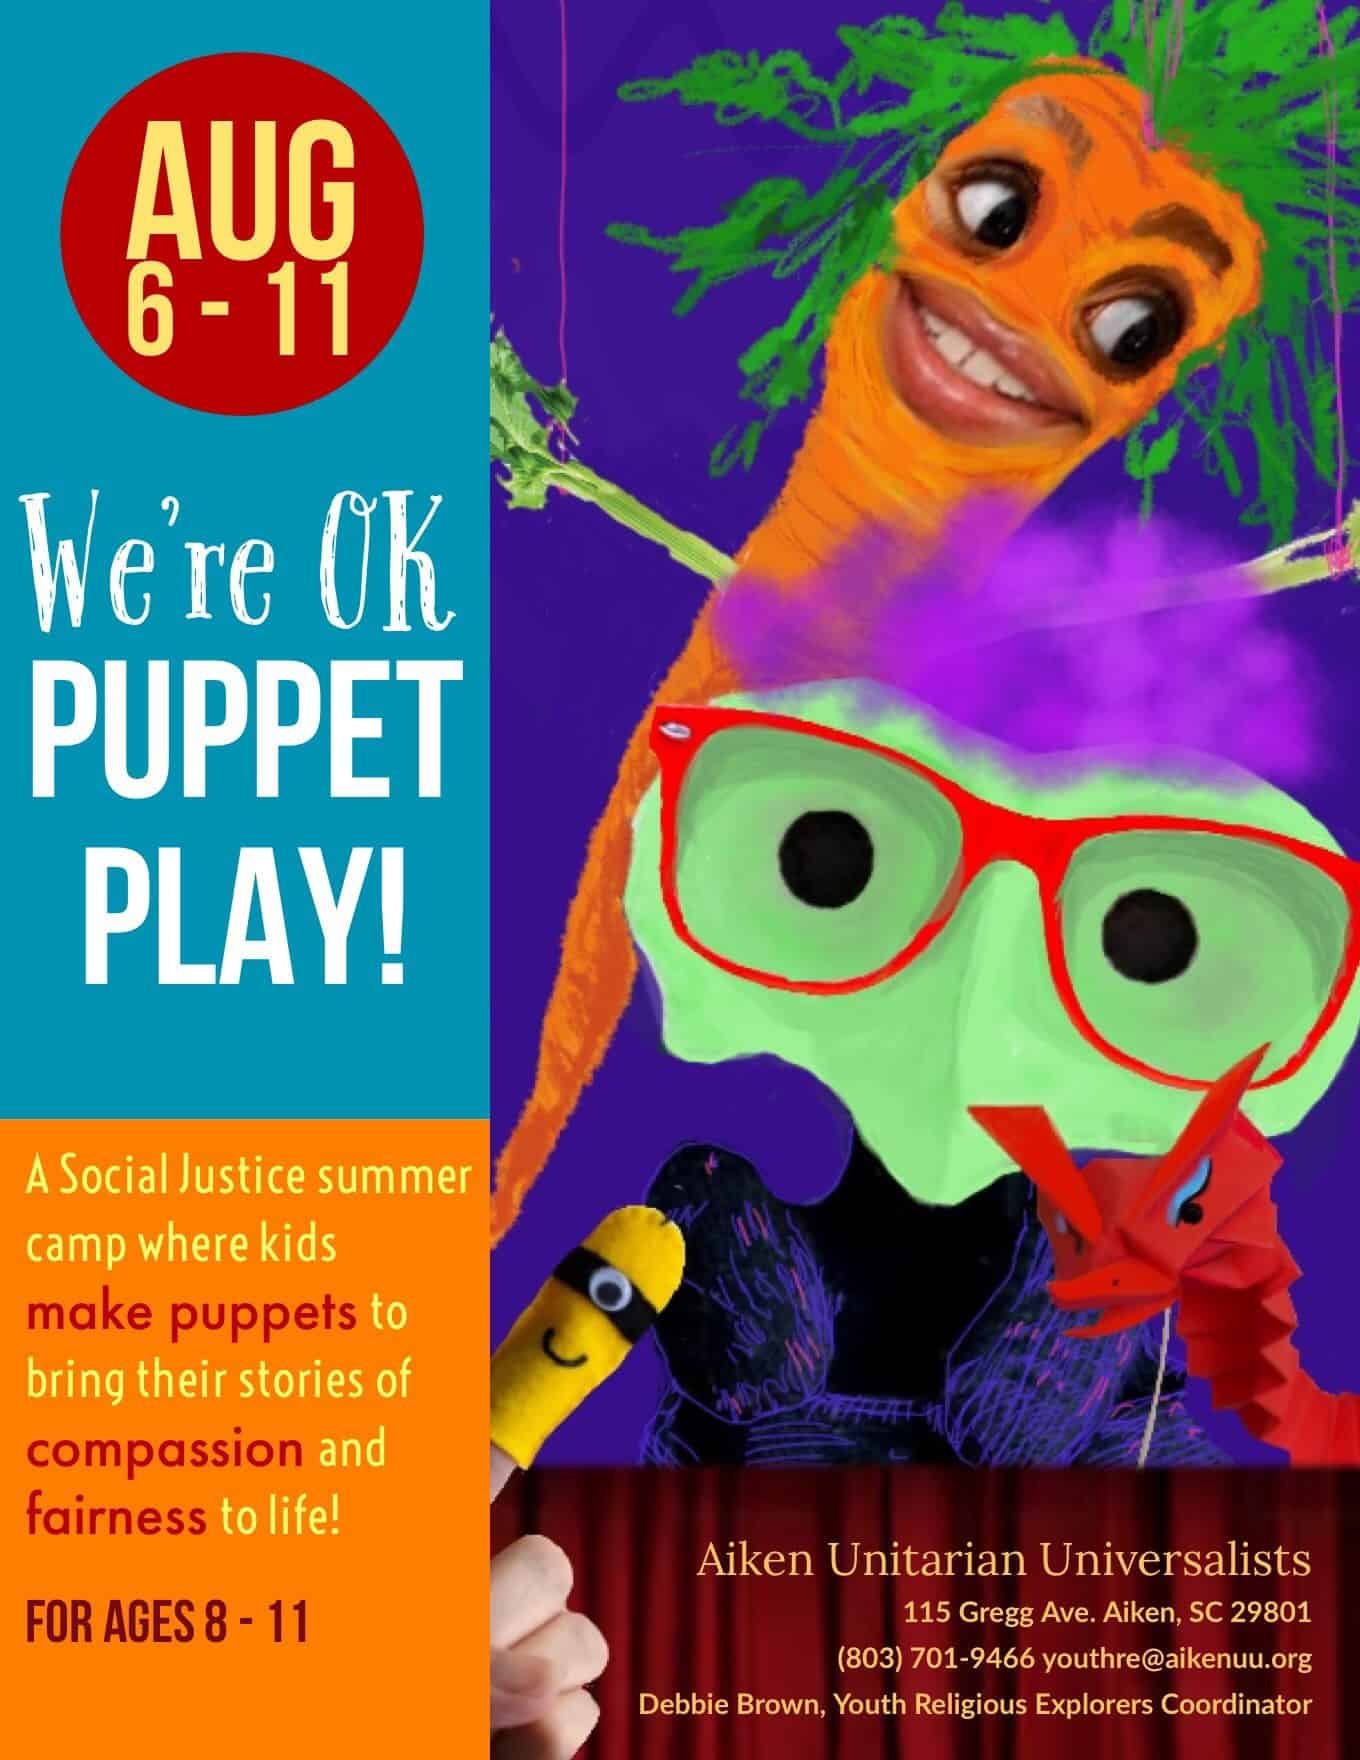 We're Ok Puppet Play Flyer August 6-11 Summer Camp for Ages 8-11